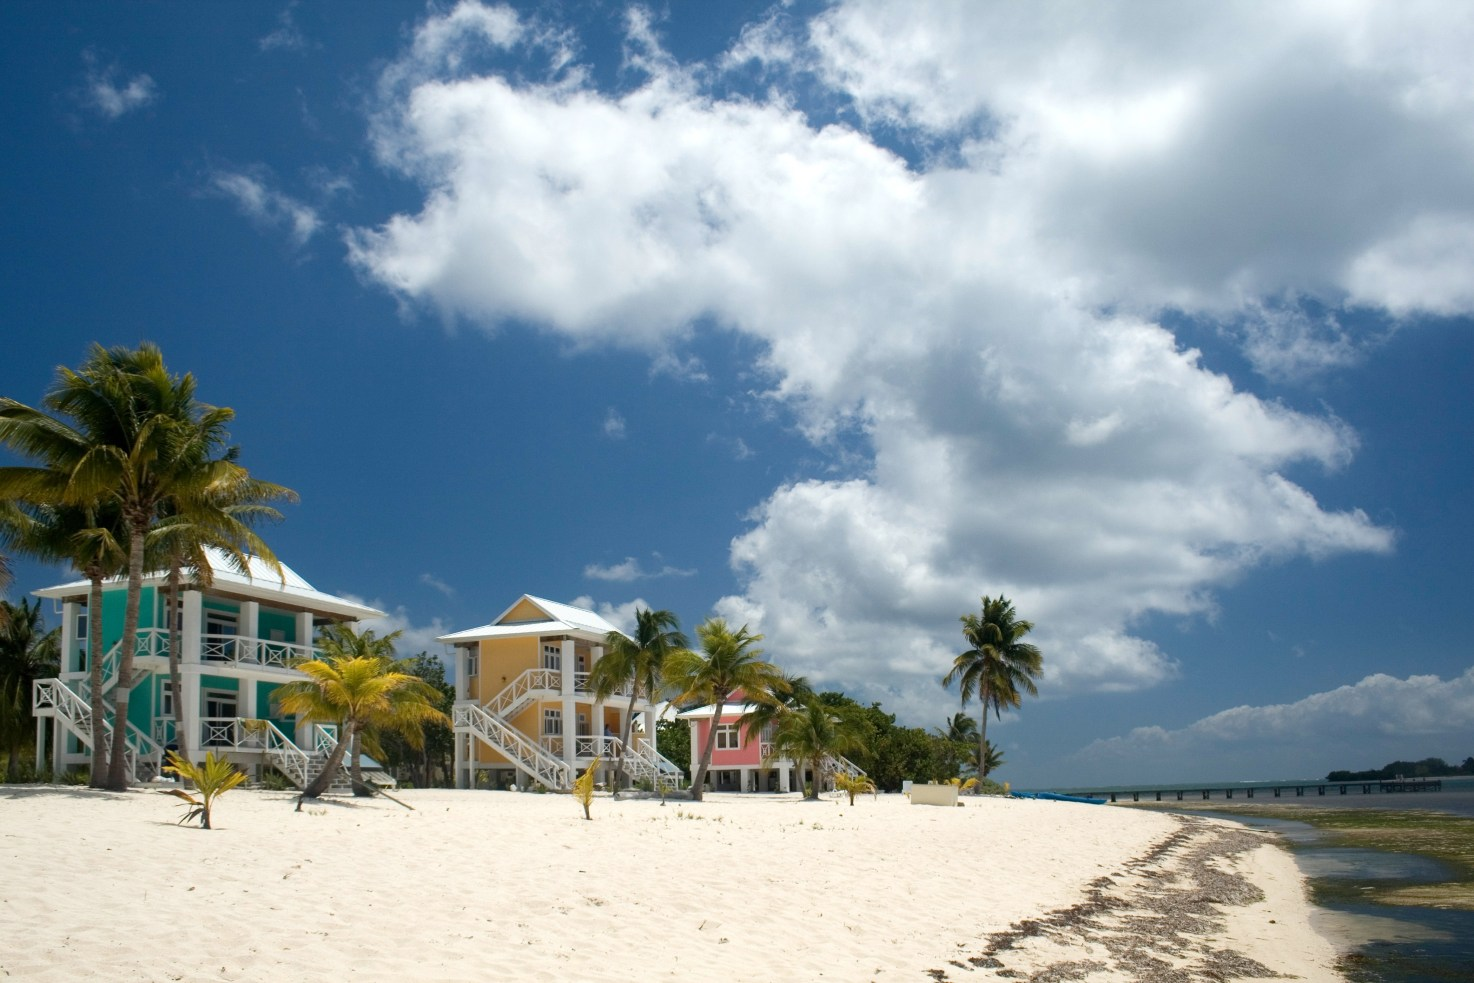 The Southern Beach resort on Little Cayman